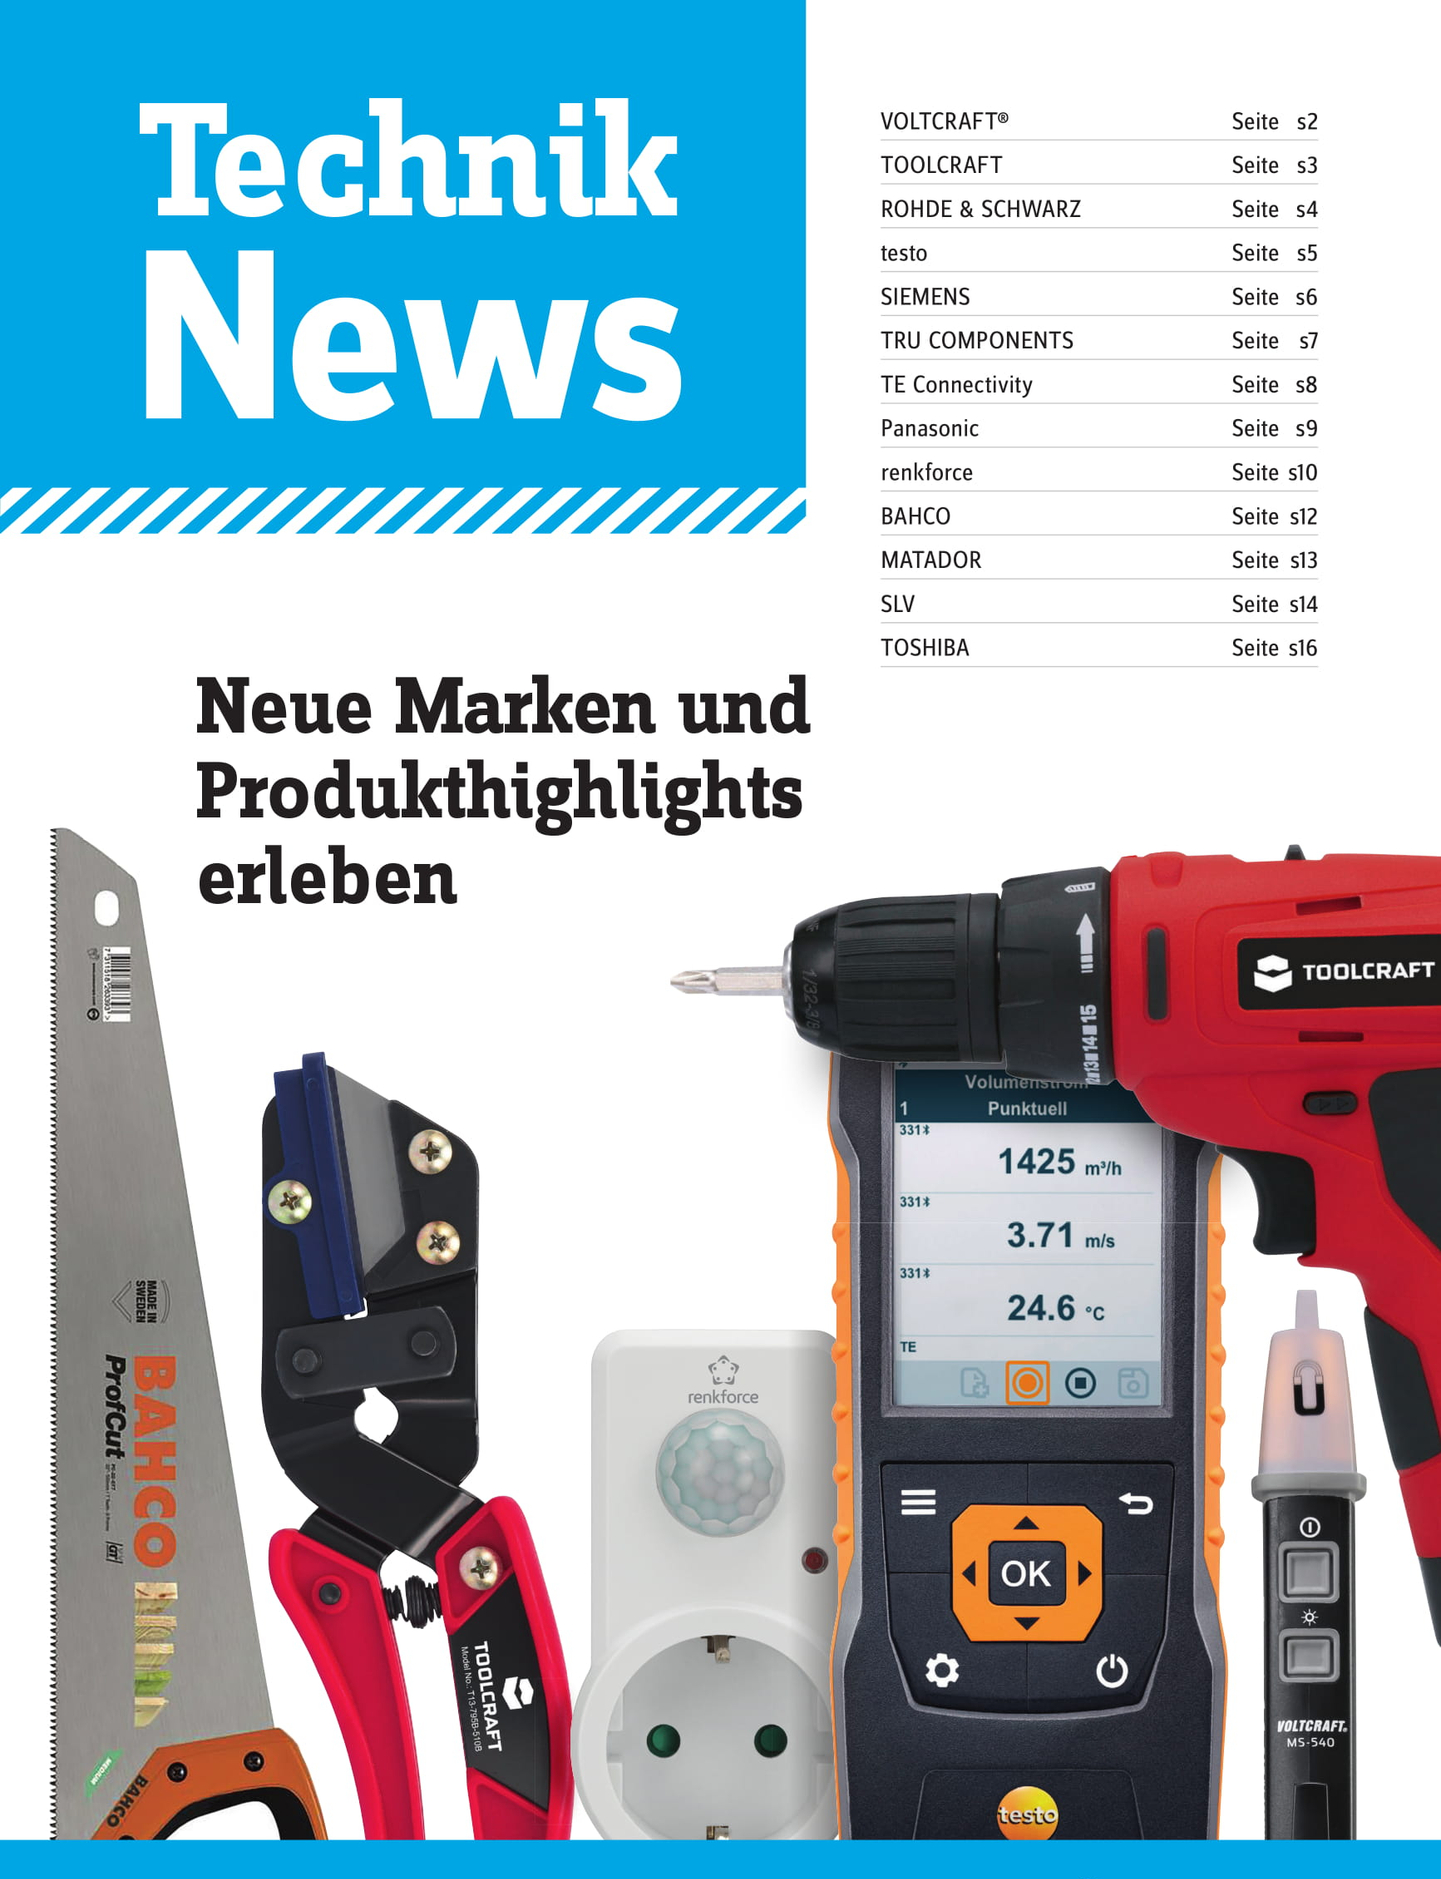 katalog_techniknews